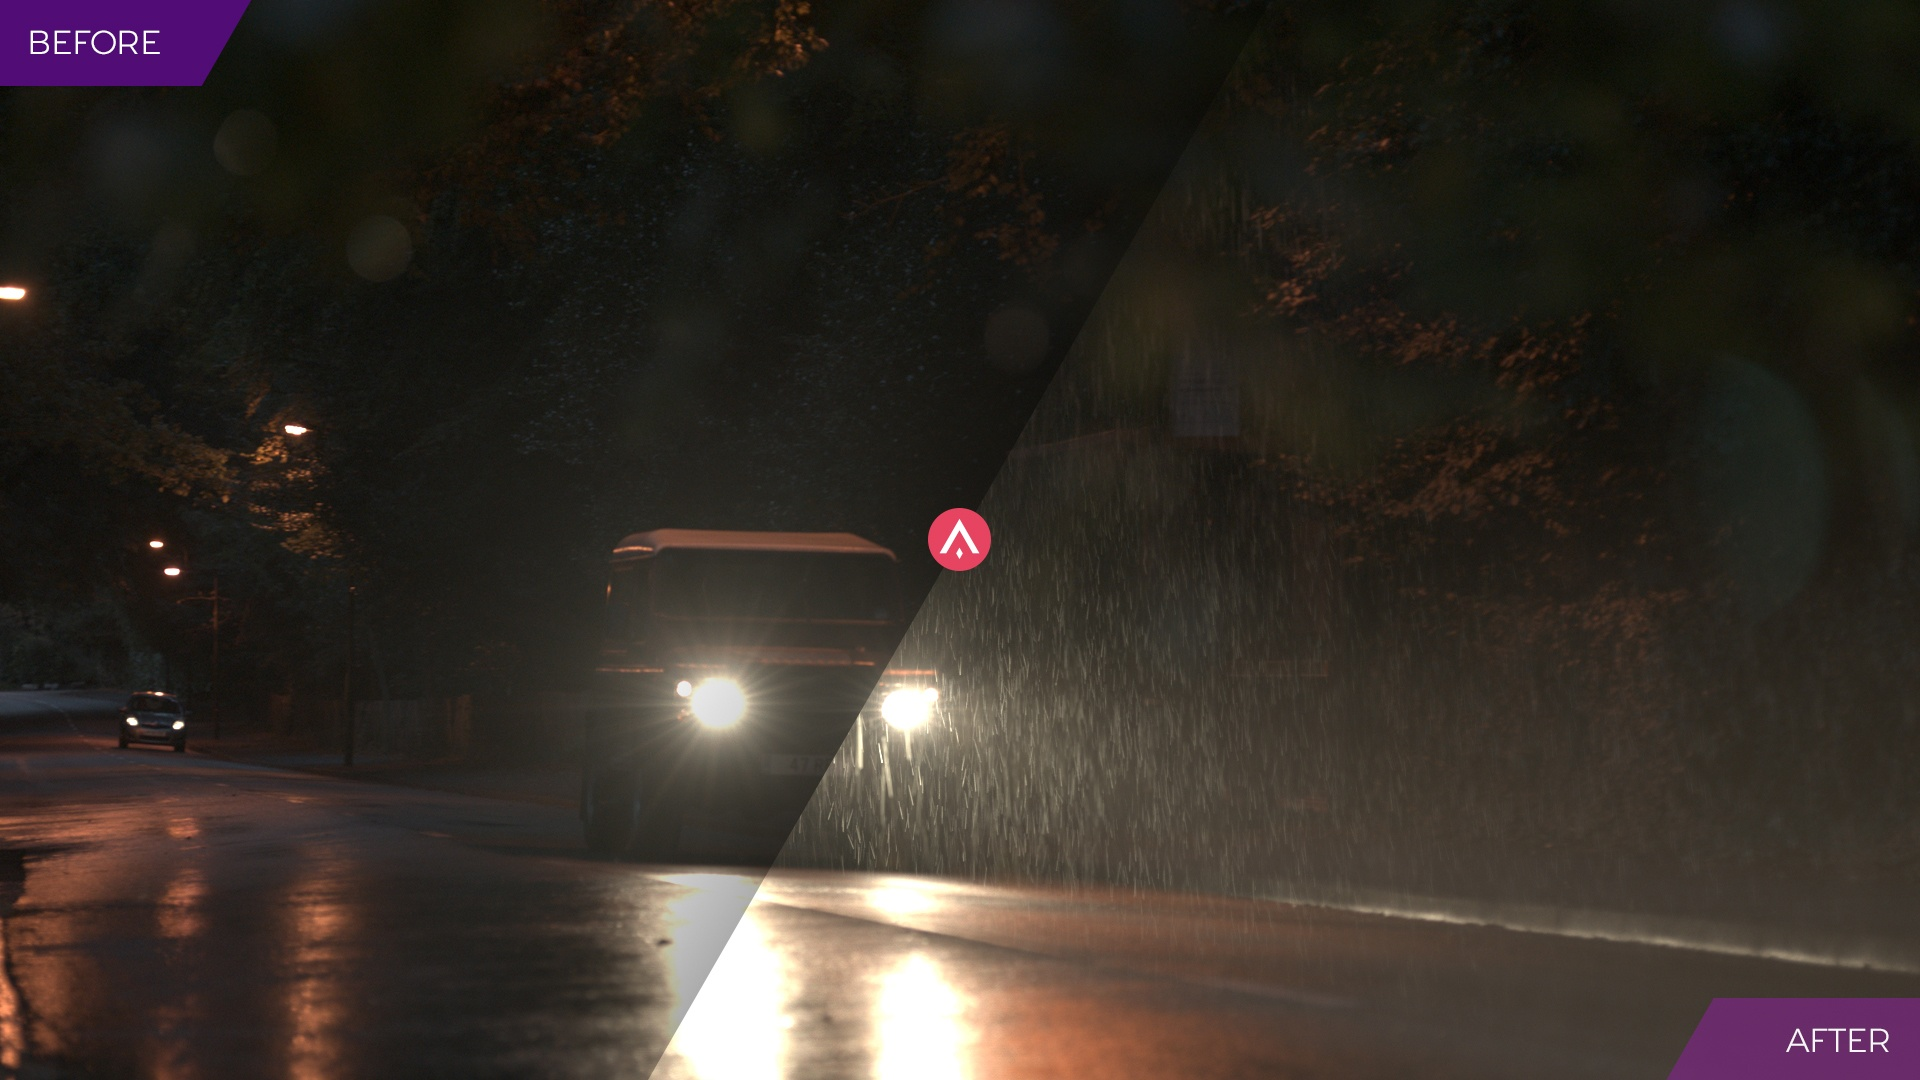 'Before and After' image of rain visual effects applied to a driving scene